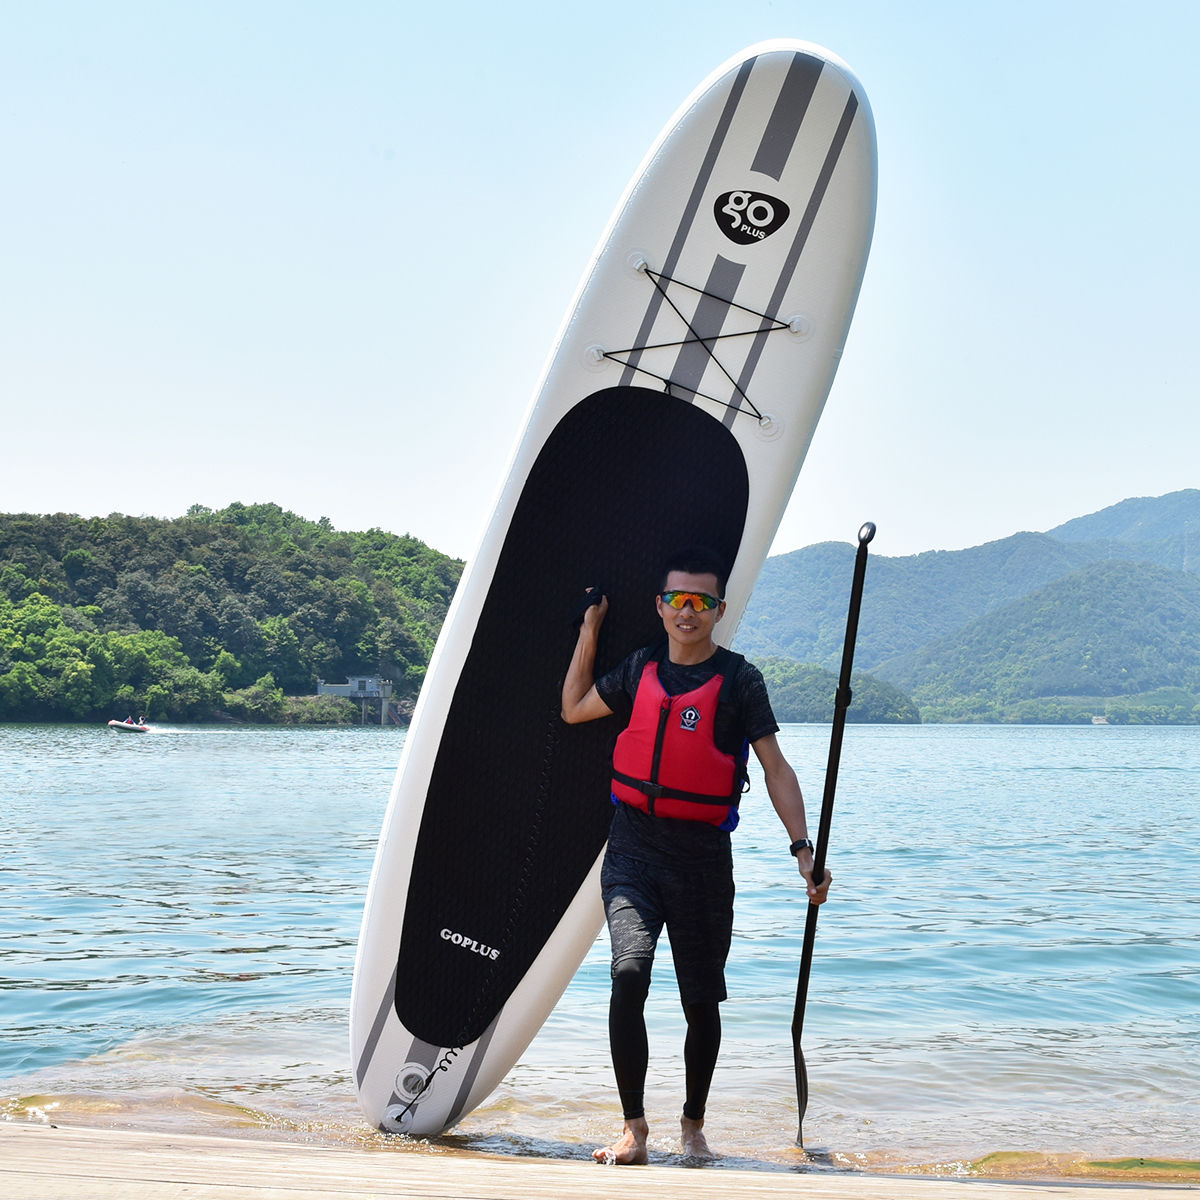 Goplus 11' Inflatable Stand Up Paddle Board SUP w  Adjustable Paddle Travel Backpack by Costway